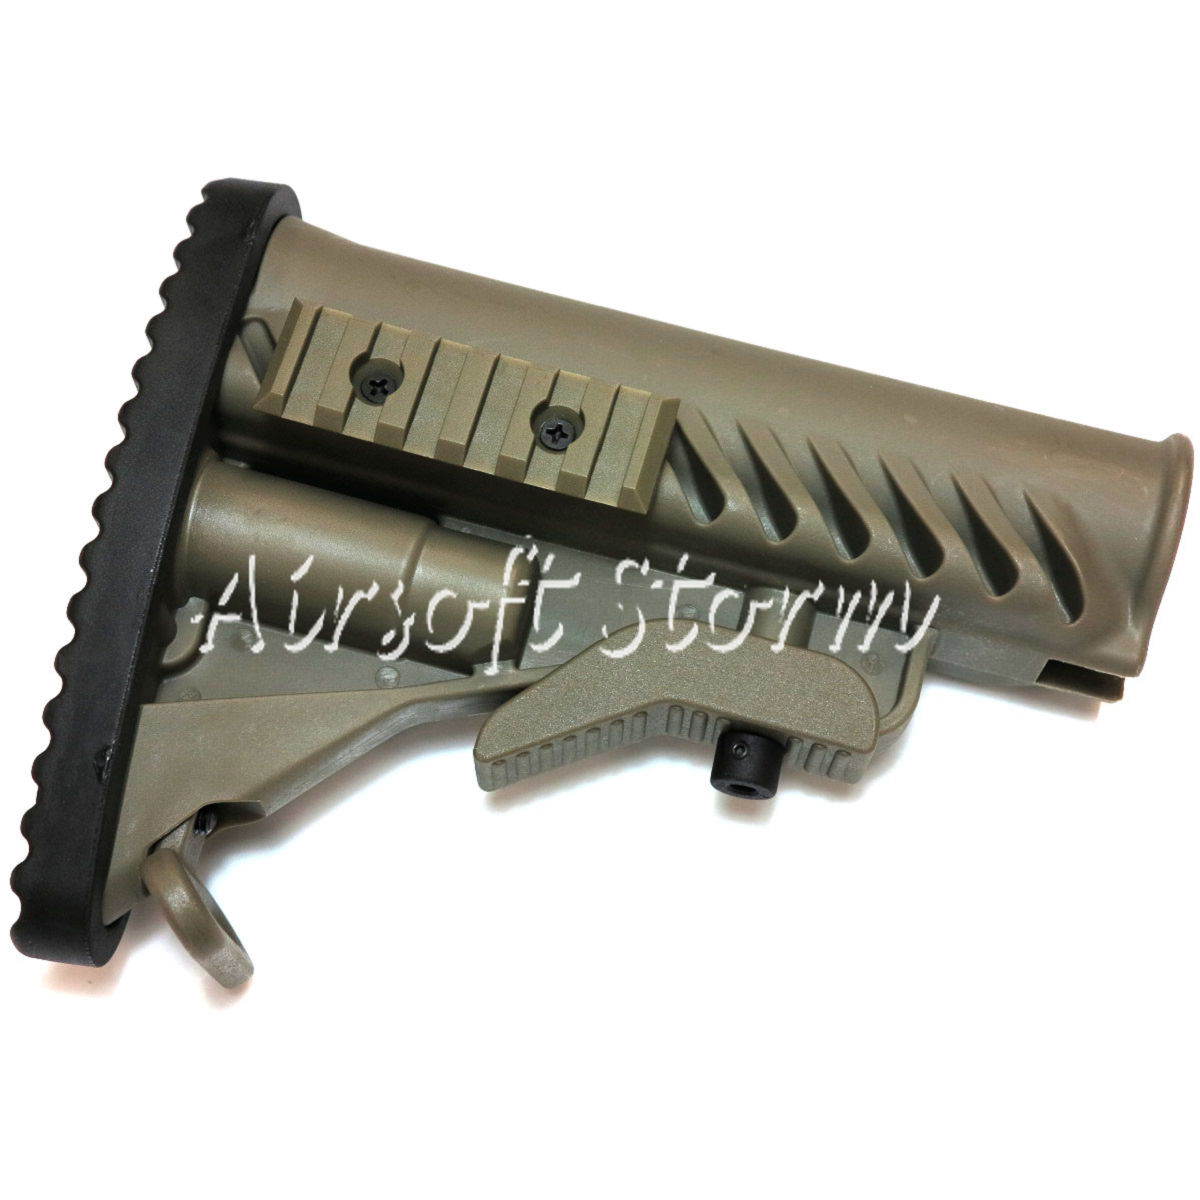 Airsoft Tactical Gear APS Battle Tele Style Stock for M4/M16 AEG ACU Foliage Green